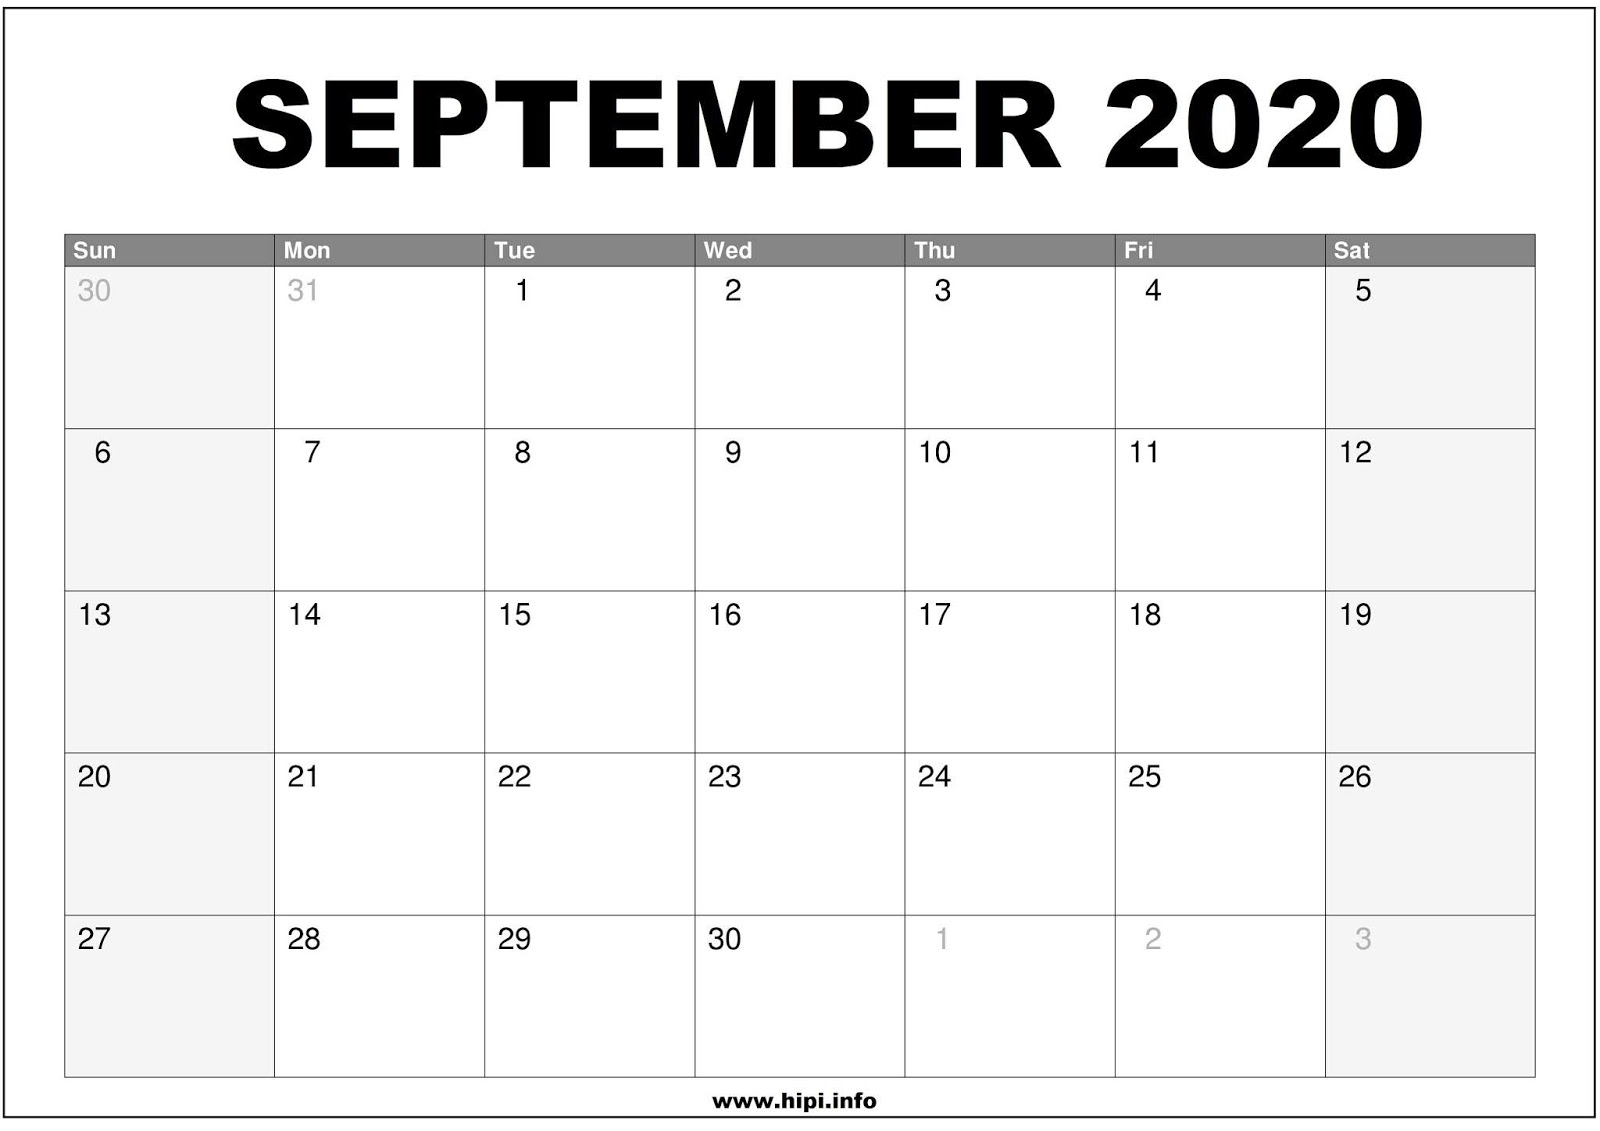 Calendars Printable / Twitter Headers / Facebook Covers pertaining to Free Printable Monthly Calendar September 2020